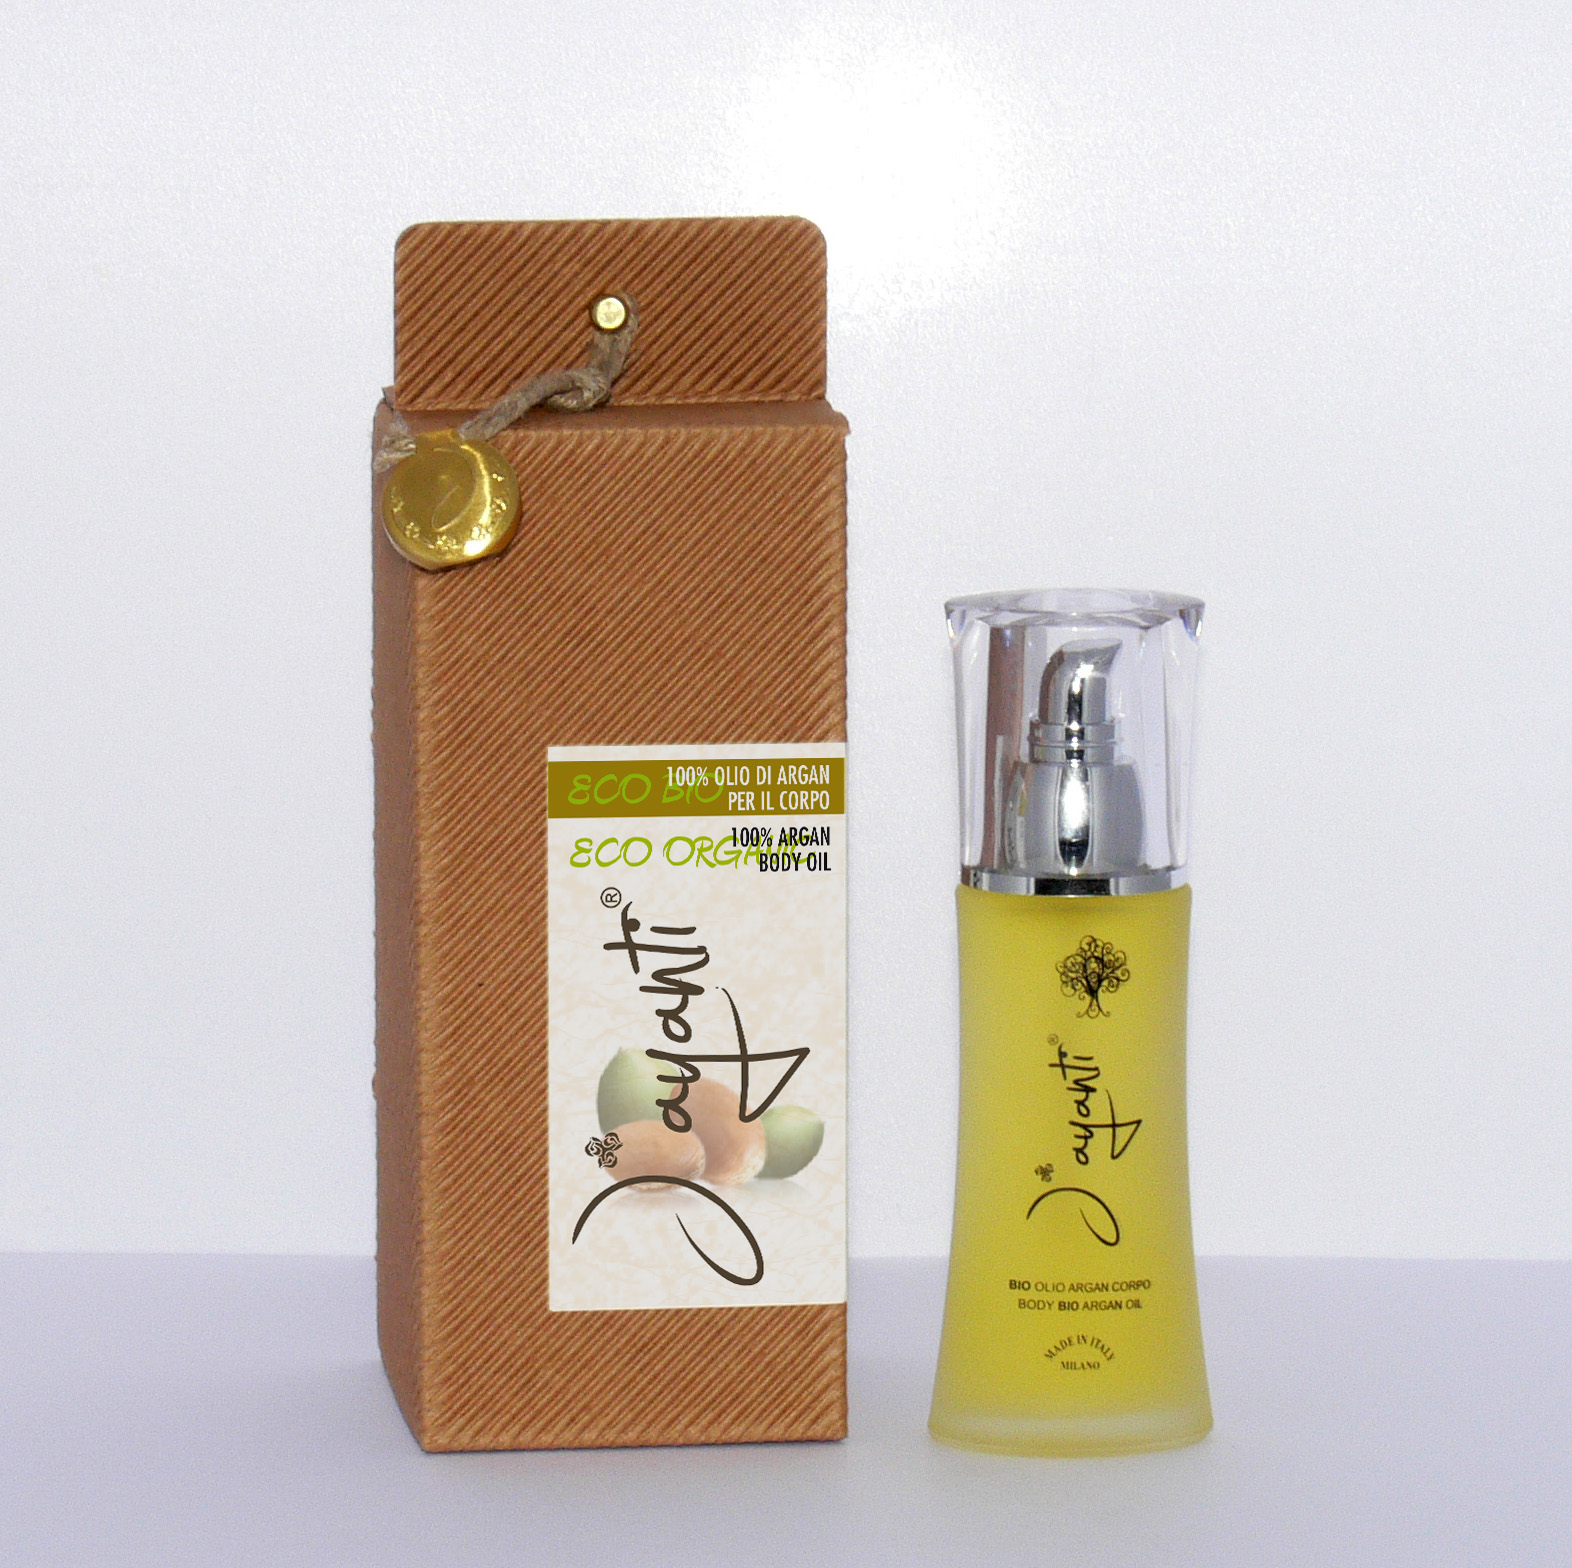 BODY OIL WITH ARGAN